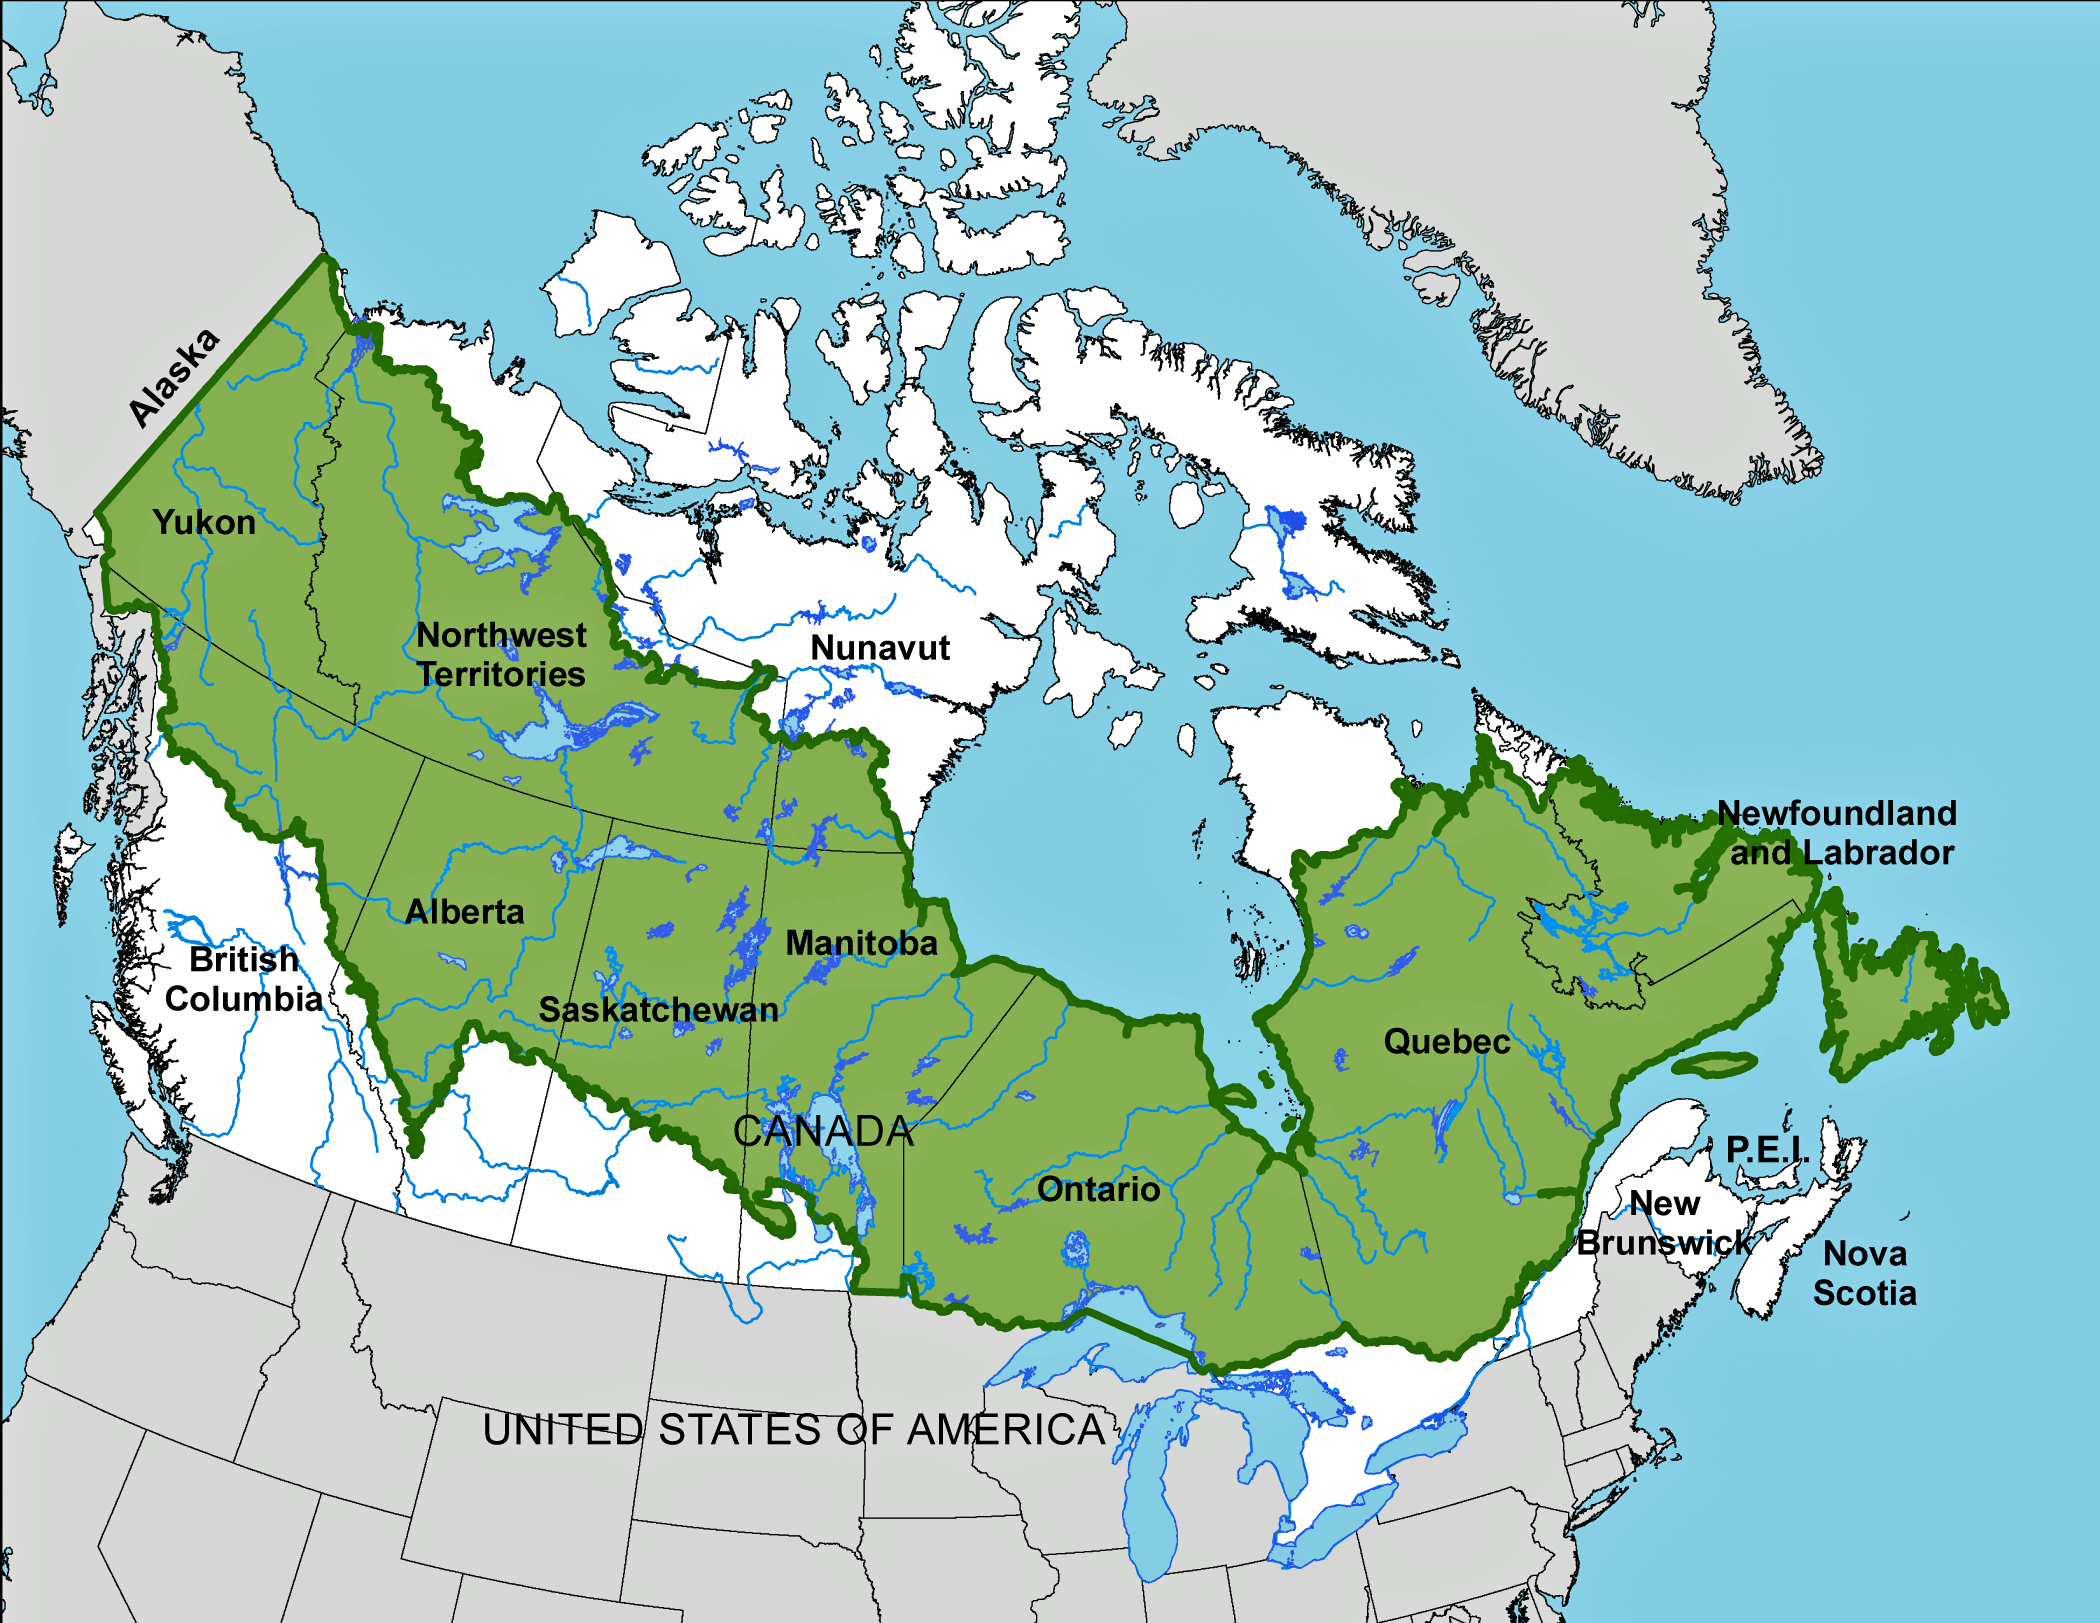 Map showing northern segment of North America and the southern tip of Greenland. The boreal forest is colored dark green and extends in a belt across Canada.